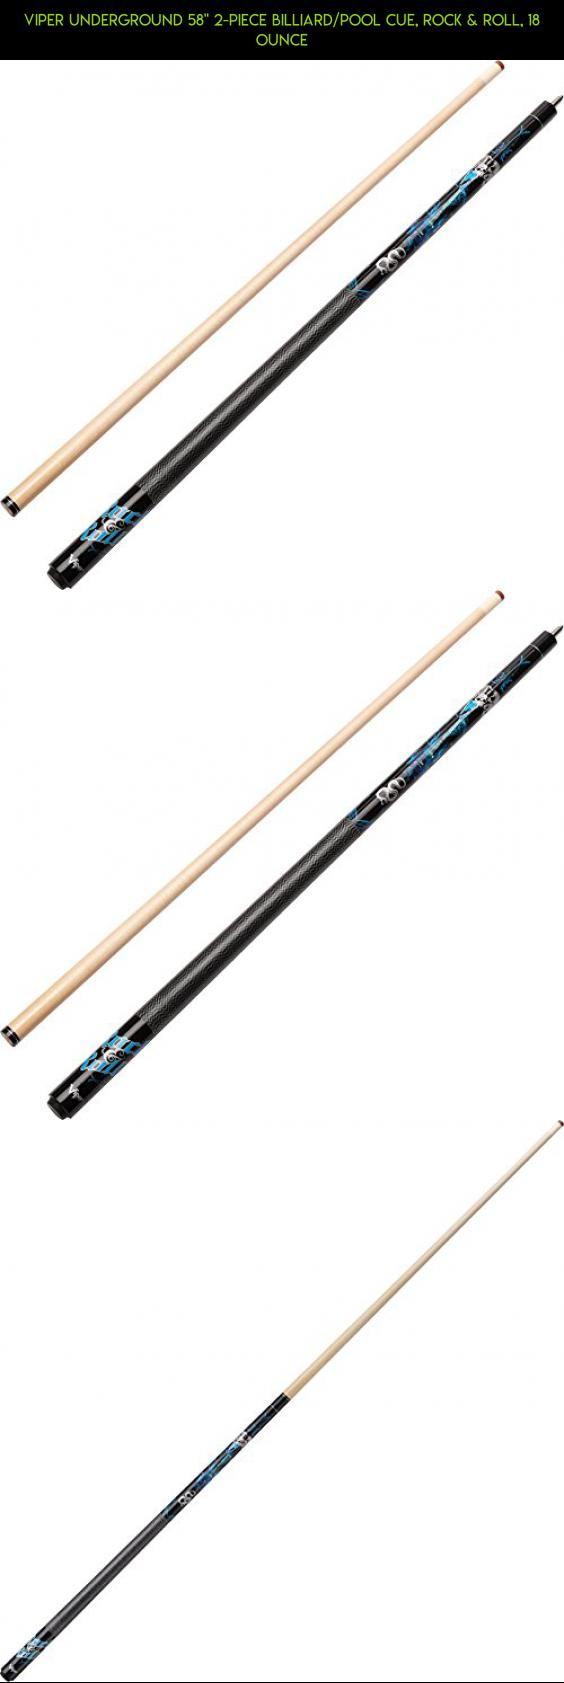 """Viper Underground 58"""" 2-Piece Billiard/Pool Cue, Rock & Roll, 18 Ounce #kit #parts #racing #plans #shopping #camera #products #tech #underground #gadgets #technology #drone #pools #fpv"""